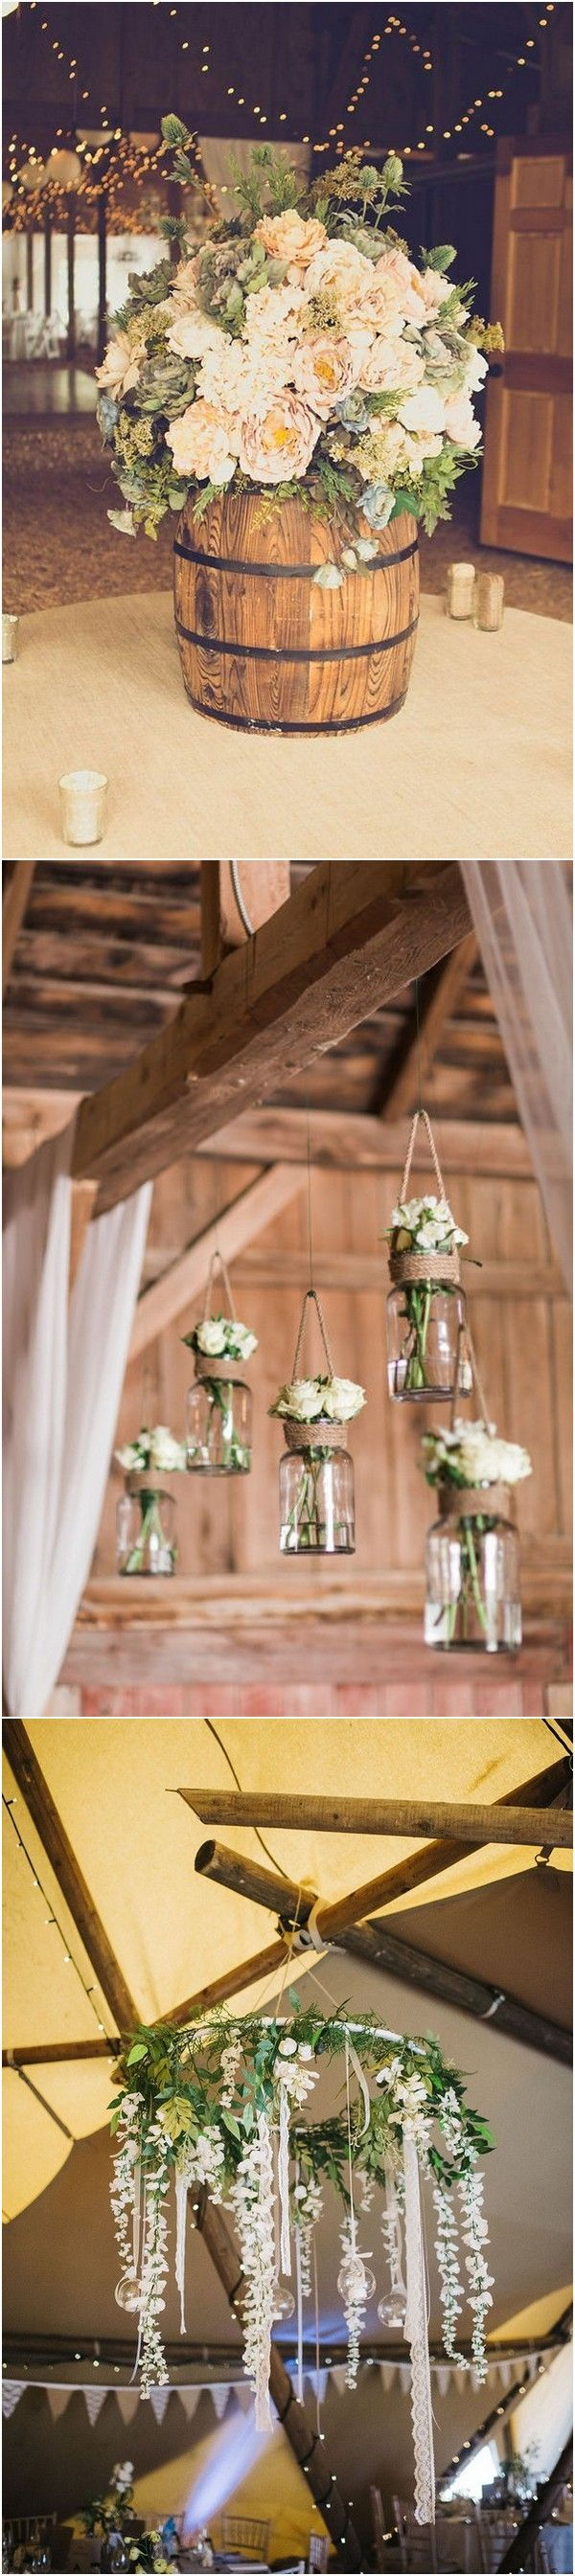 Perfect Country Rustic Barn Wedding Decoration Ideas  Barn